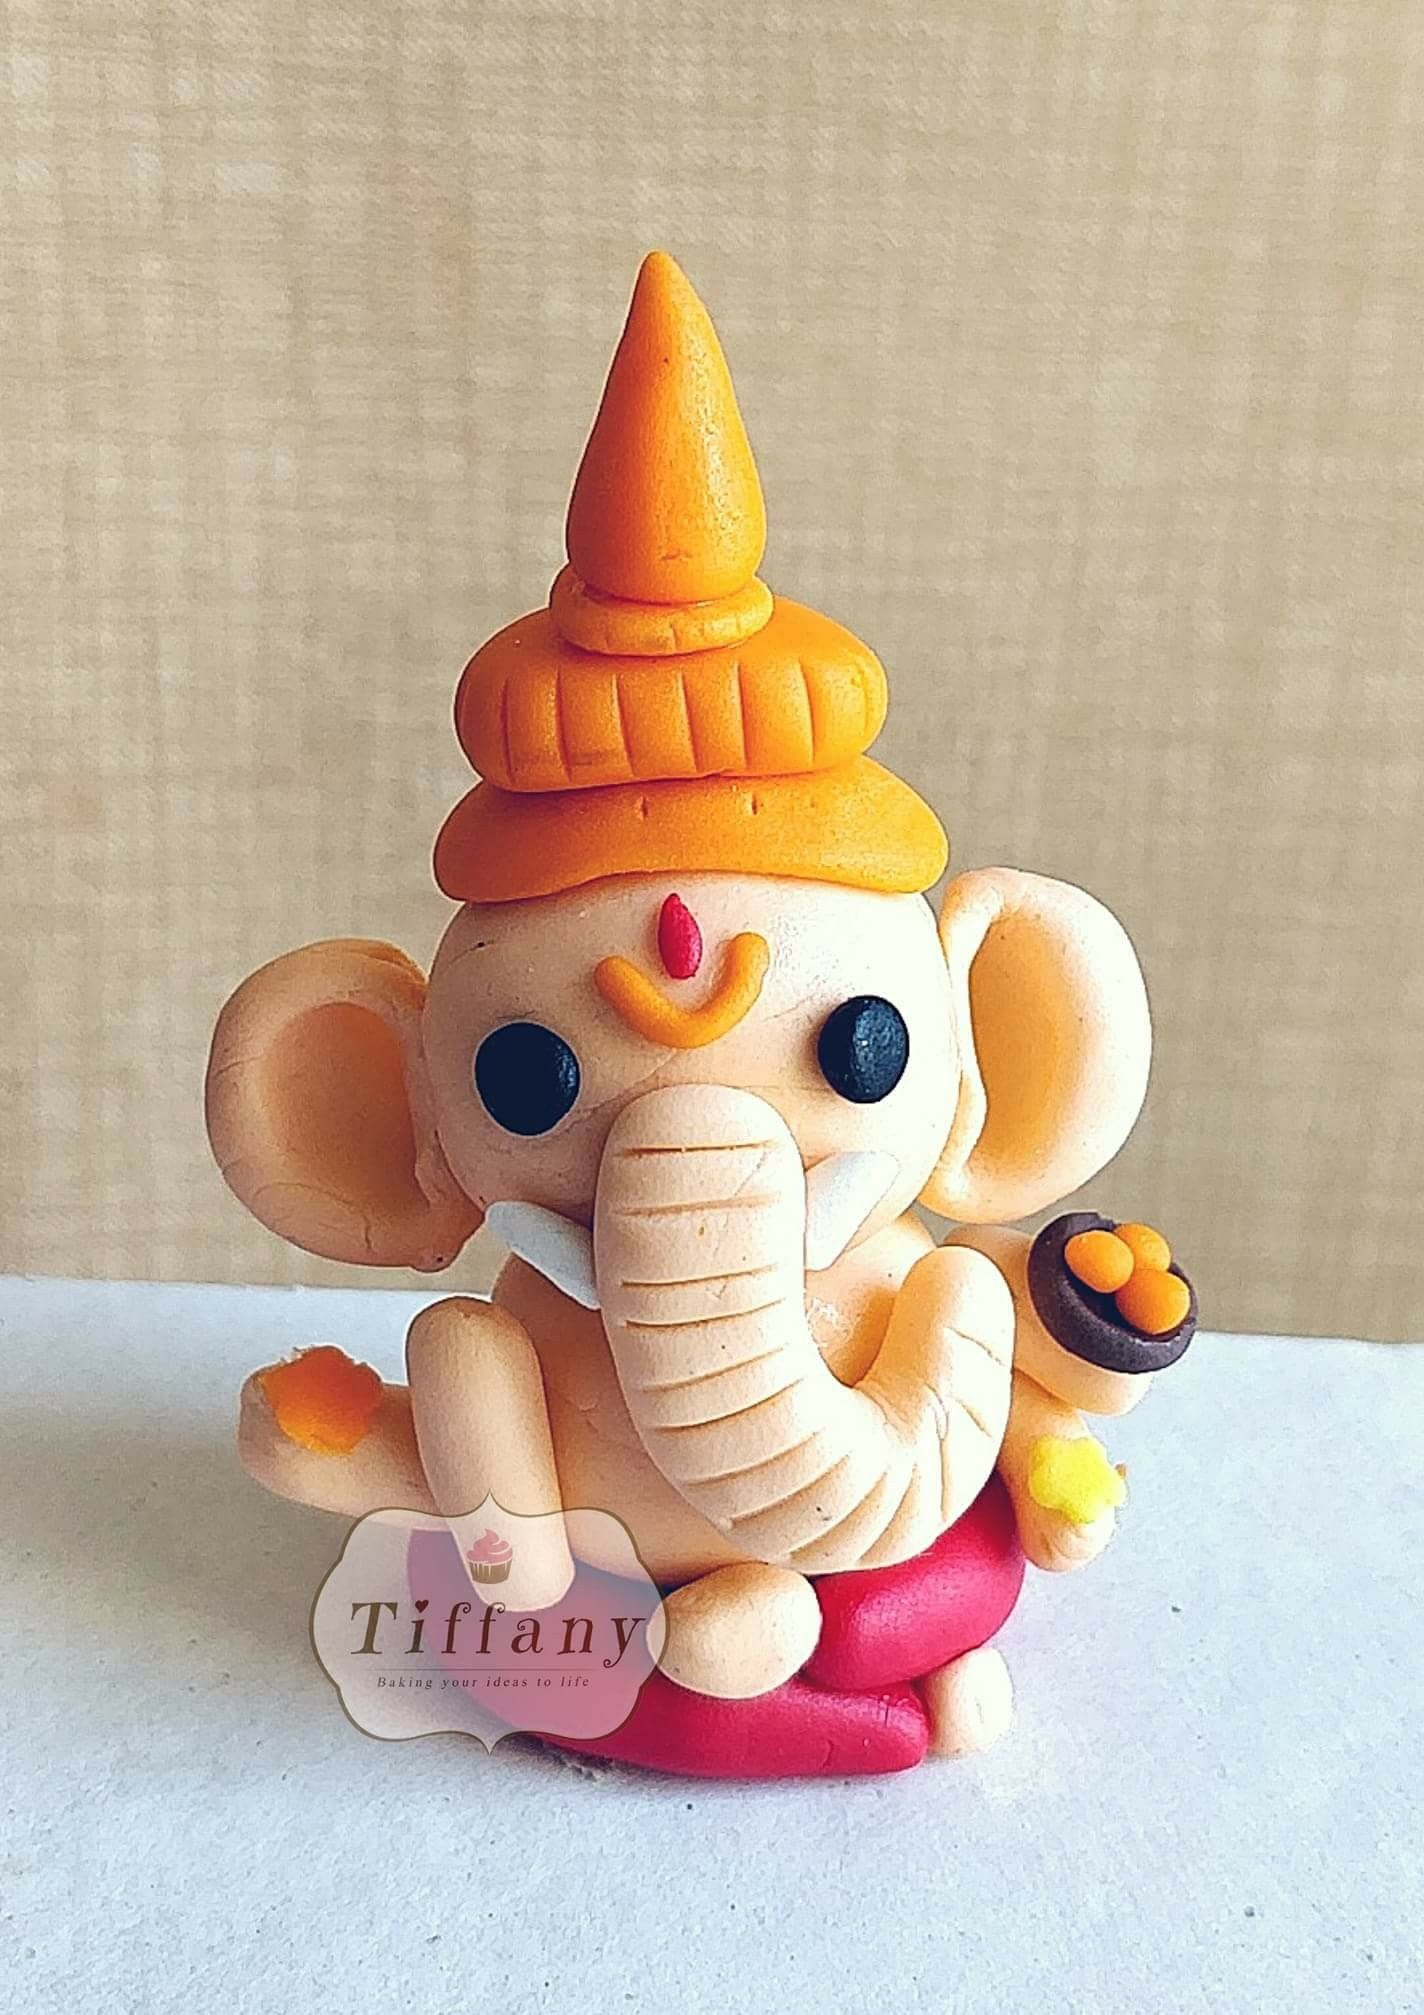 Ganesh images toys  Pin by Surbhi Gupta on cute  Pinterest  Polymer clay disney Craft